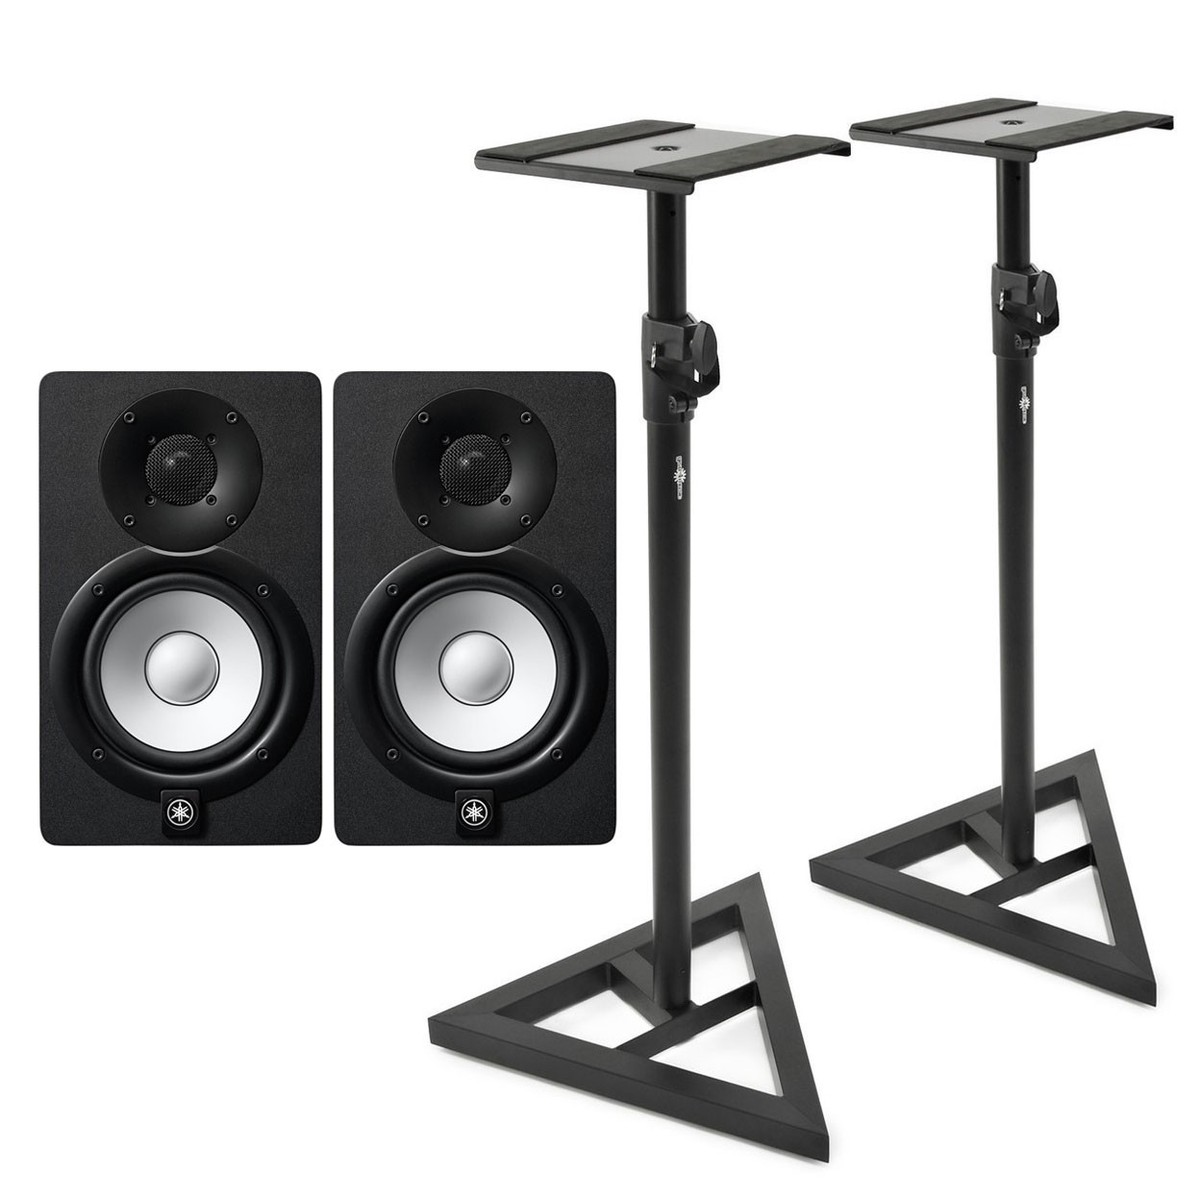 yamaha hs5. yamaha hs5 active studio monitors (pair) with stands - bundle. loading zoom hs5